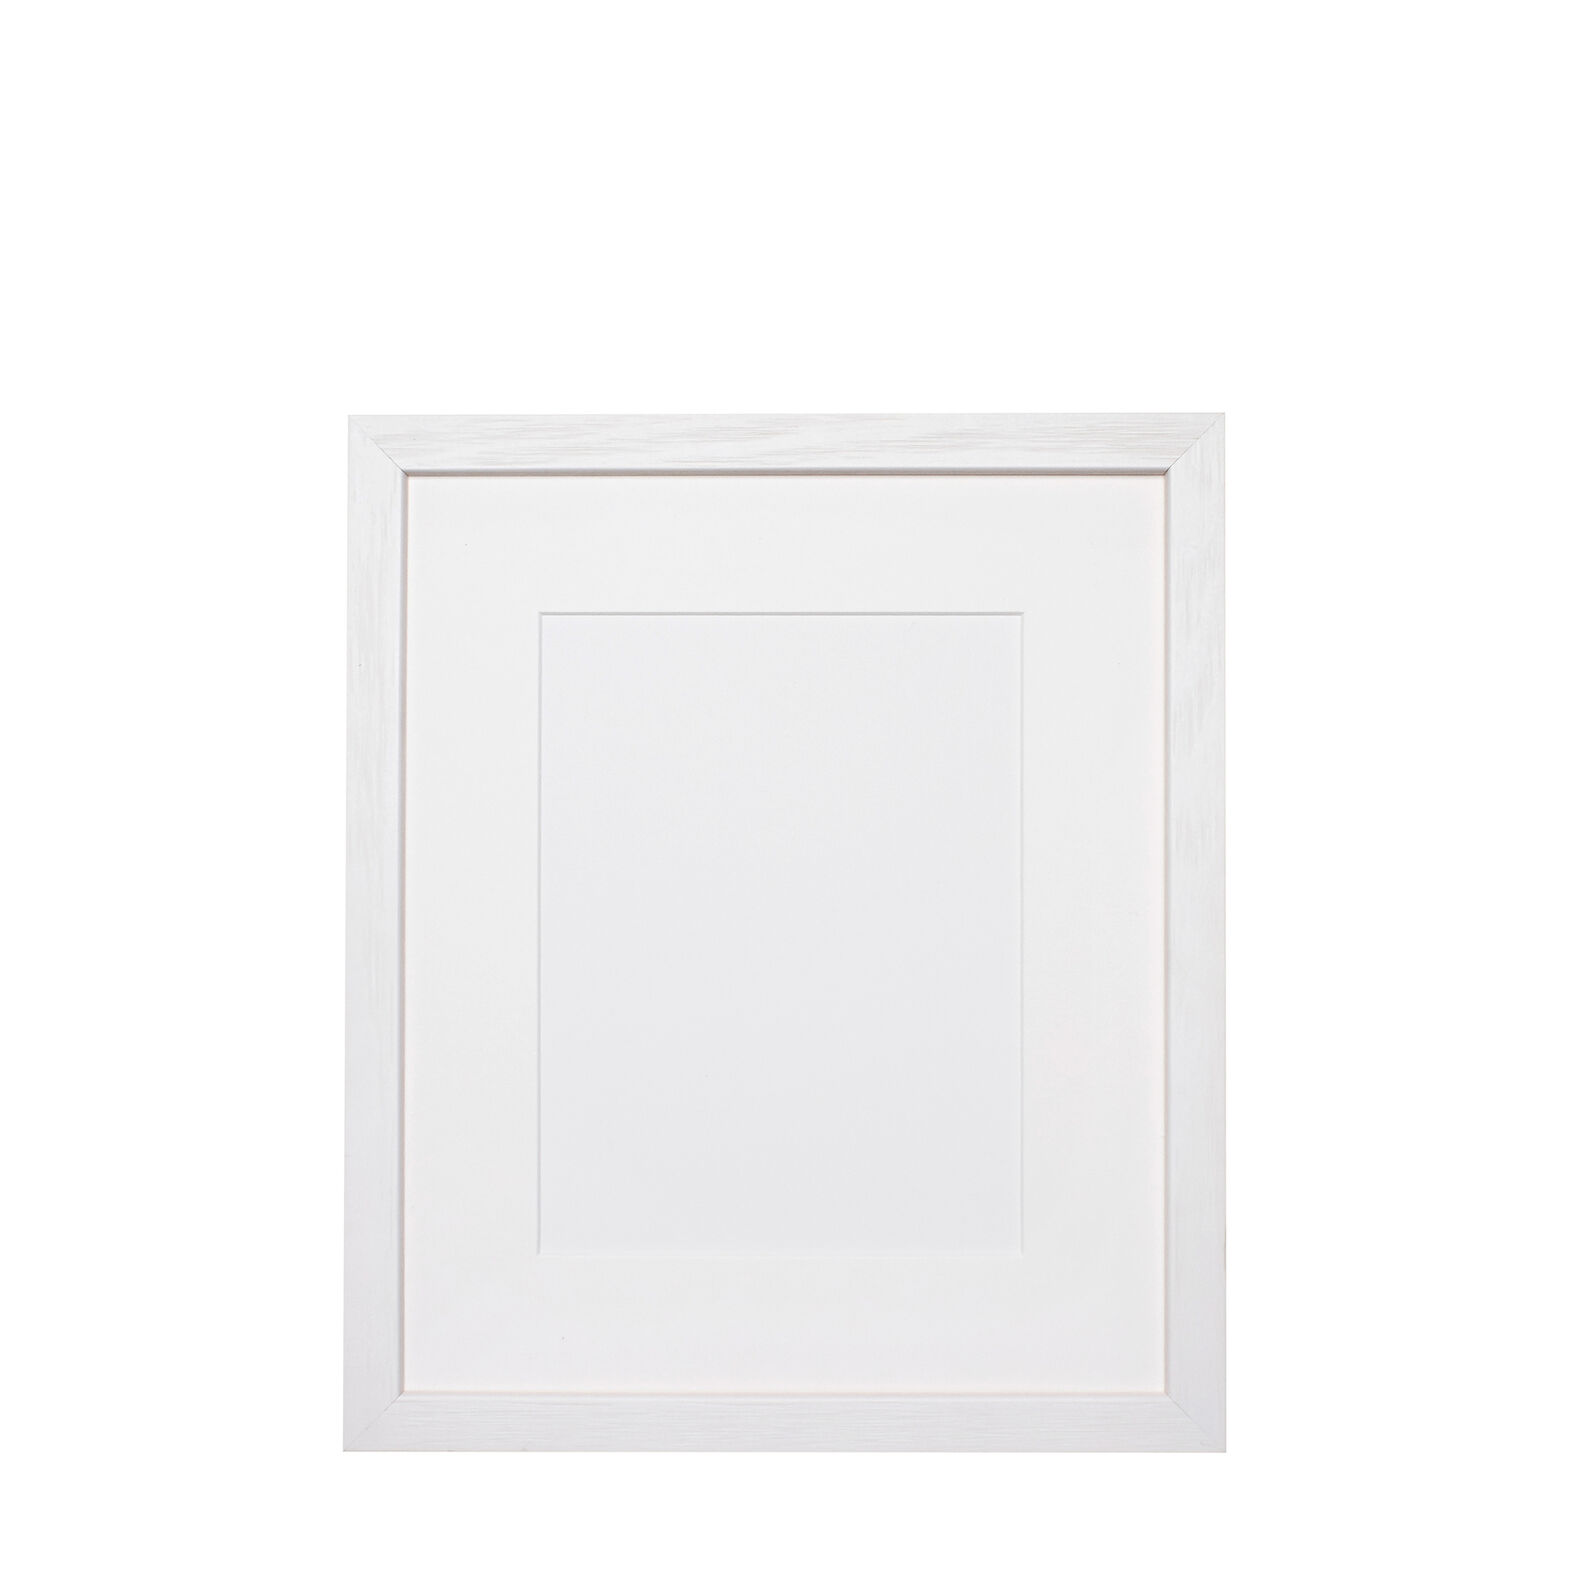 White wooden photo frame with picture mount